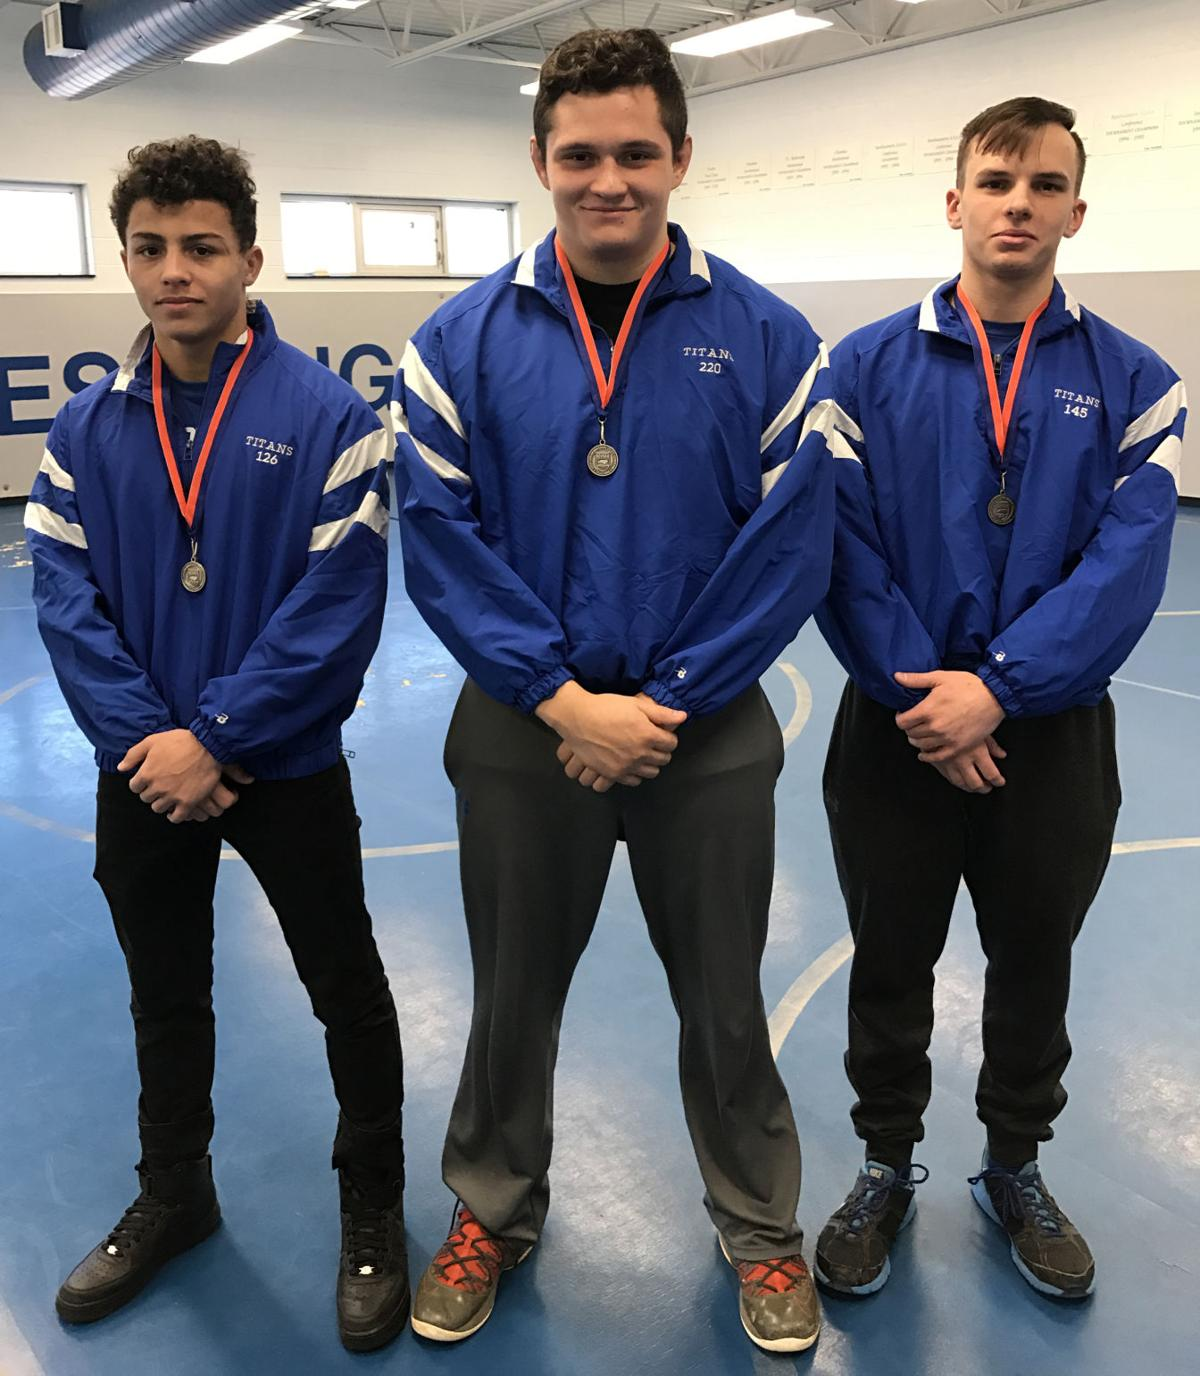 Banged-up Titan wrestlers ready for State 4A Championships